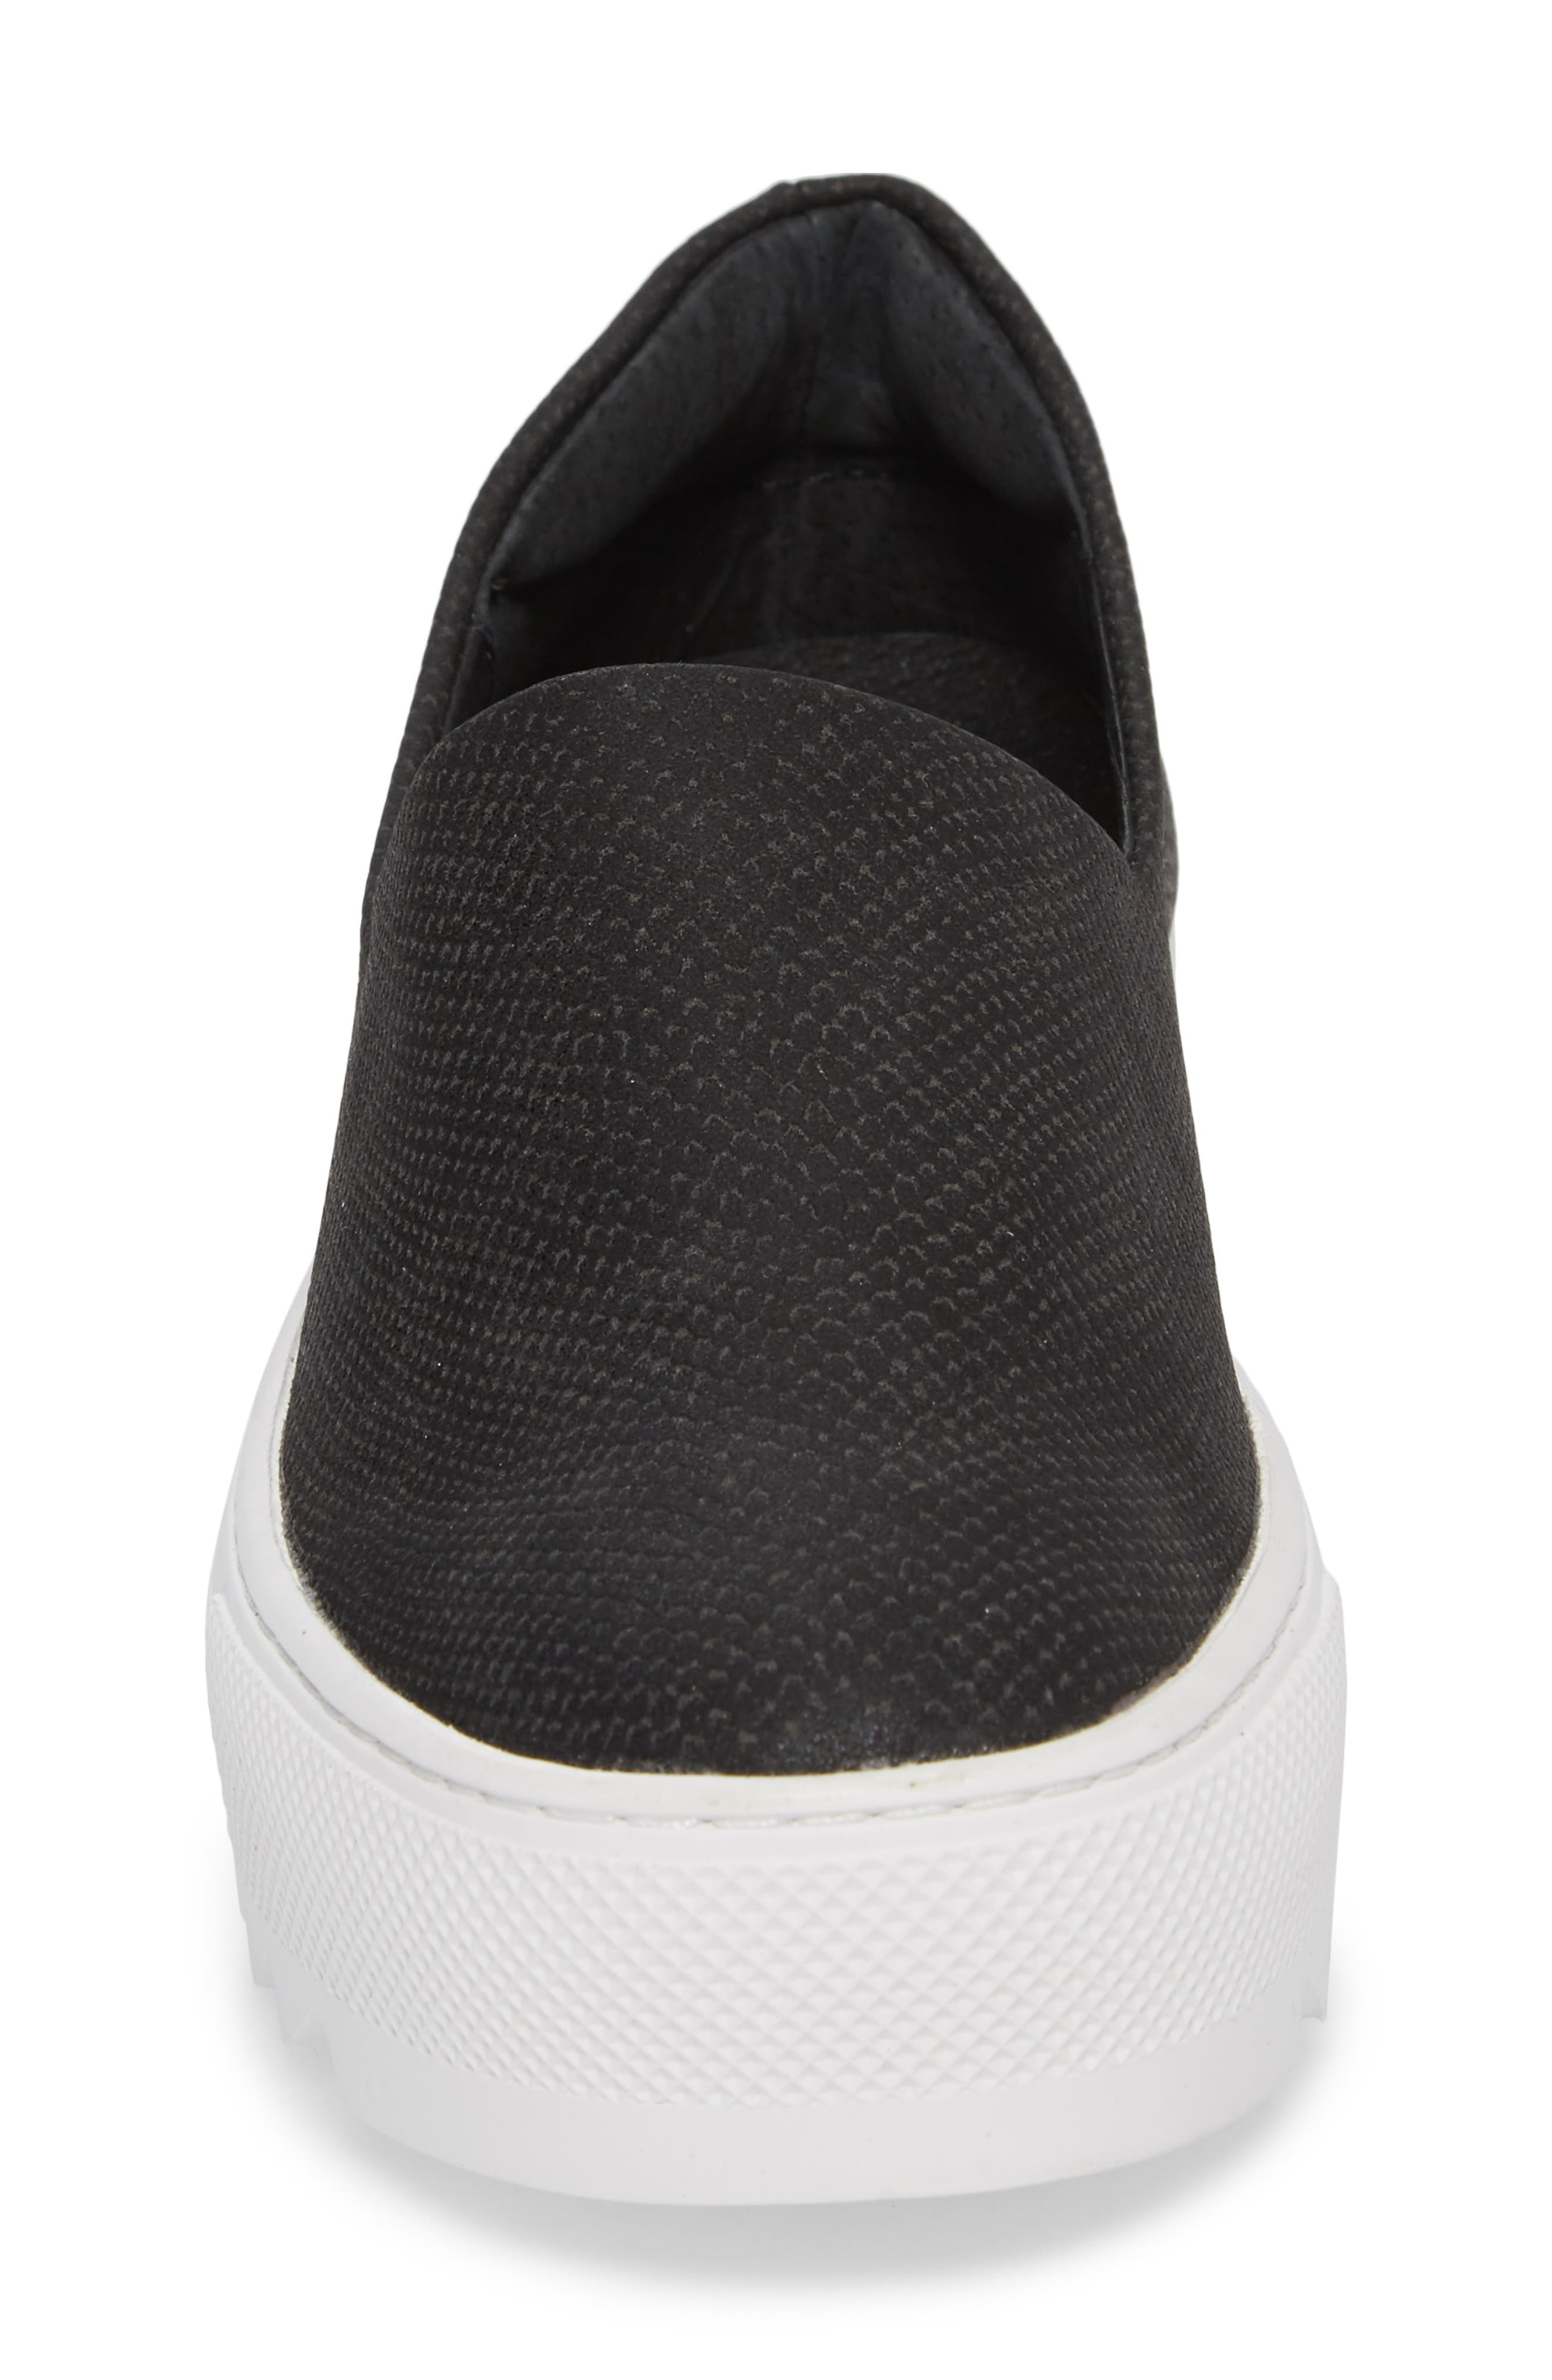 Sage Platform Slip-On Sneaker,                             Alternate thumbnail 4, color,                             BLACK MIX FABRIC